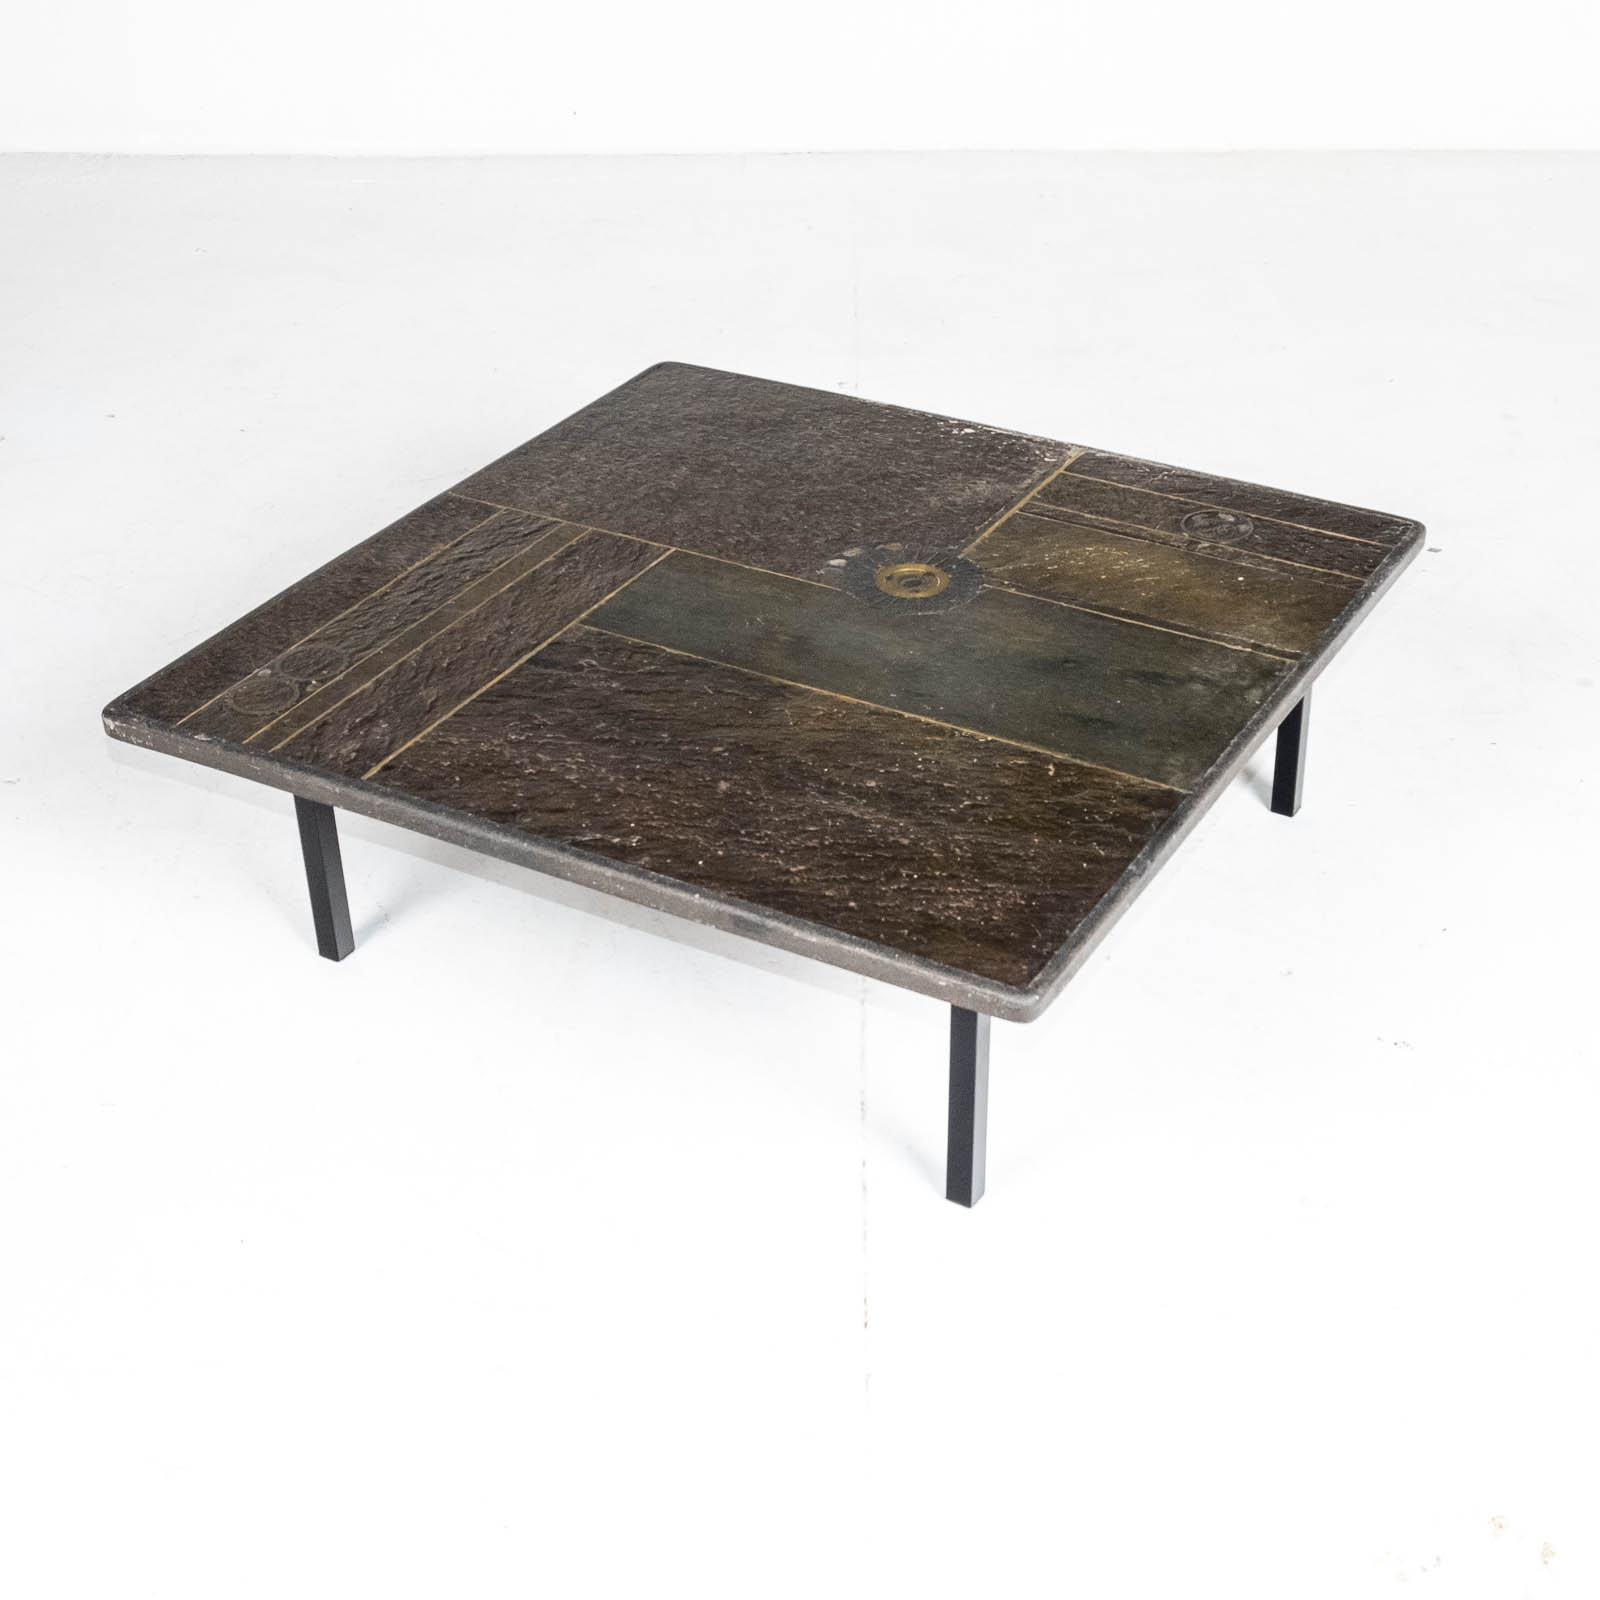 square coffee table by paul kingma in stone slate and brass 1970s the netherlands